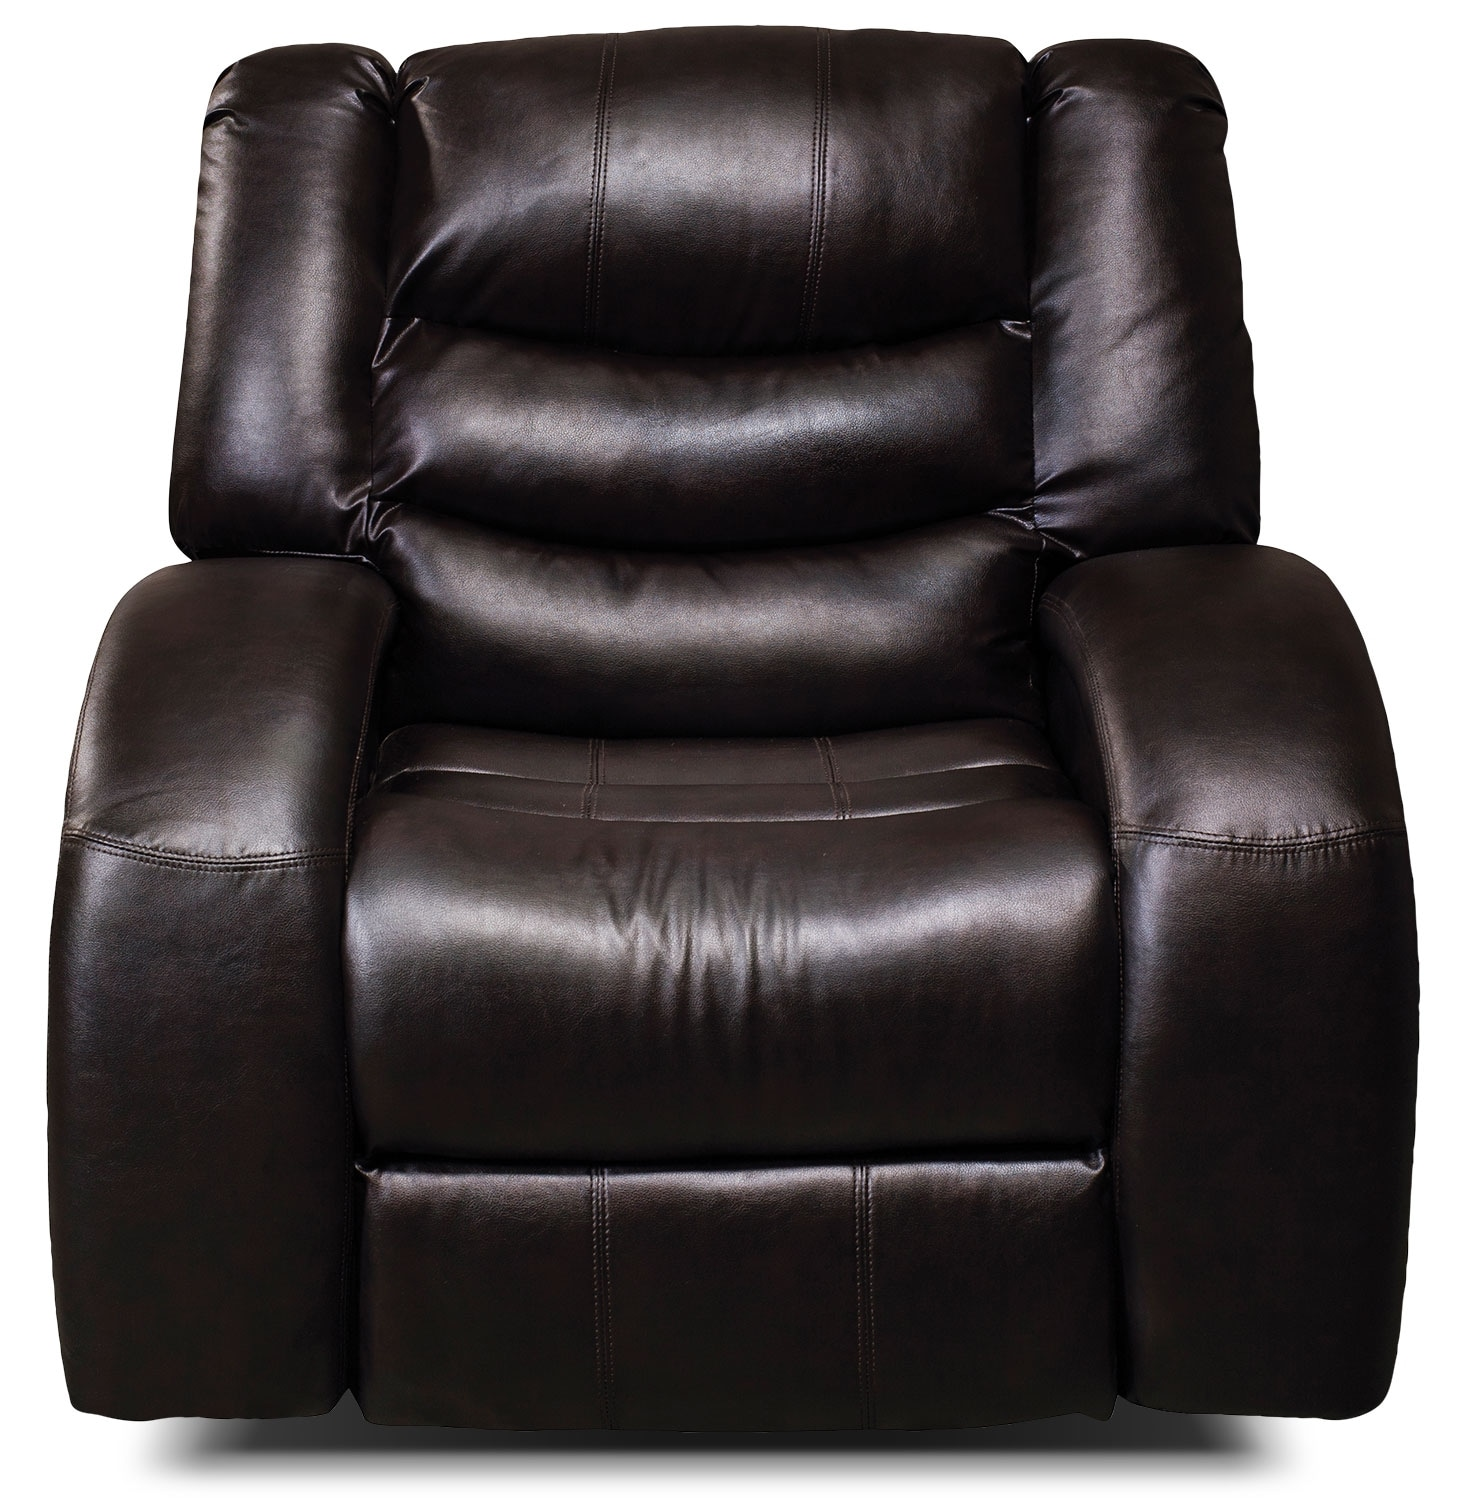 Living Room Furniture - Angus Bonded Leather Reclining Chair – Dark Brown